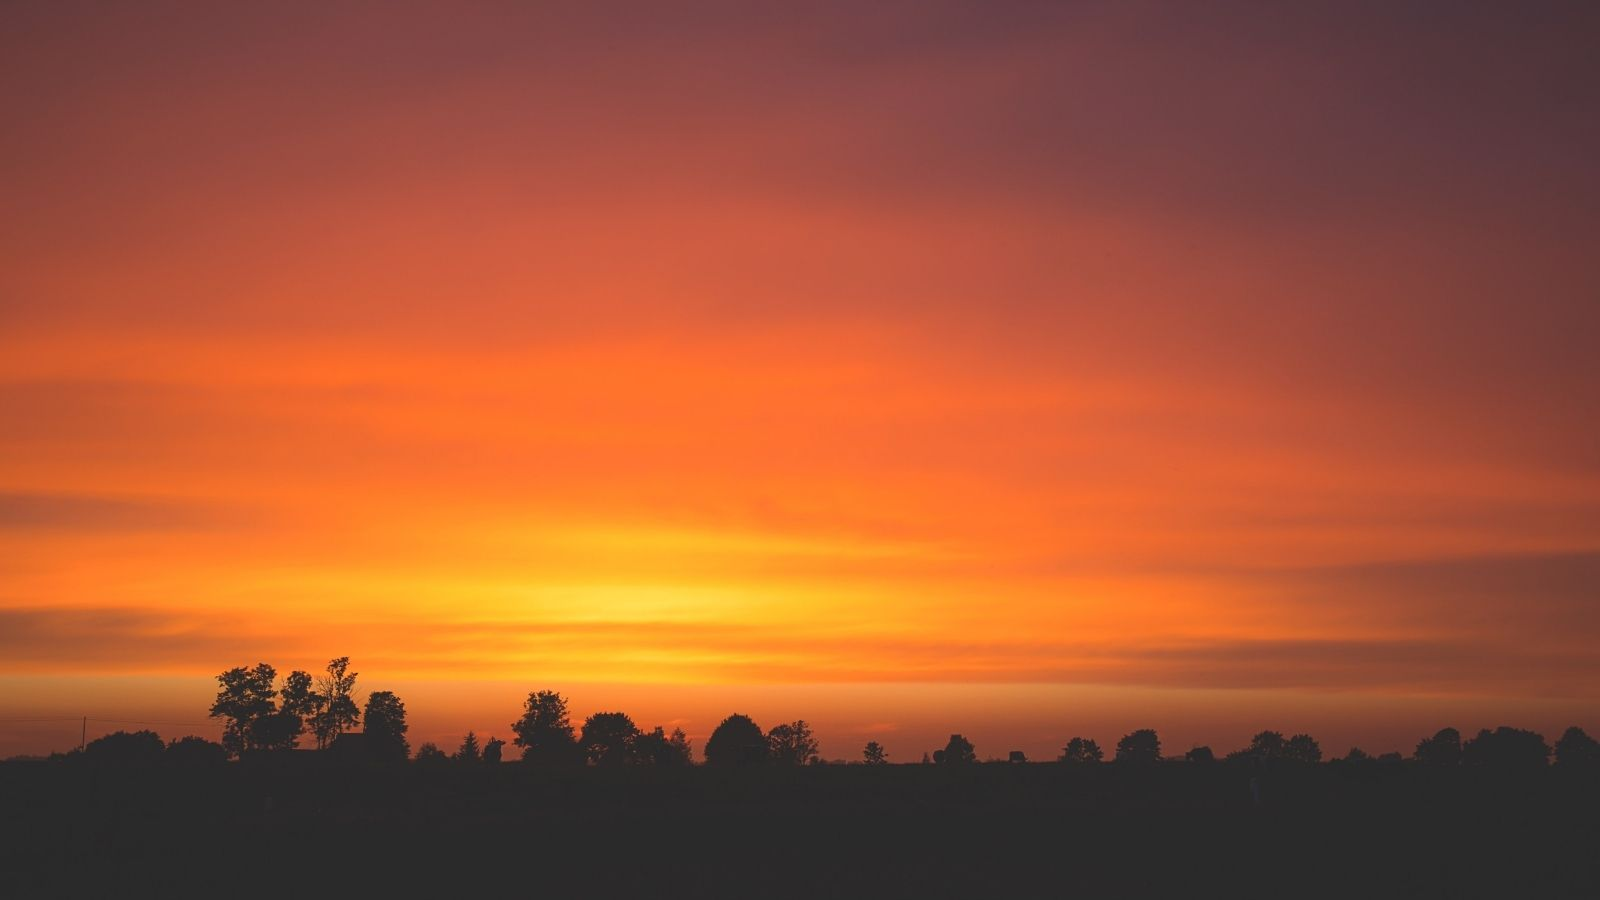 Late Summer Sunset with silhouette of trees